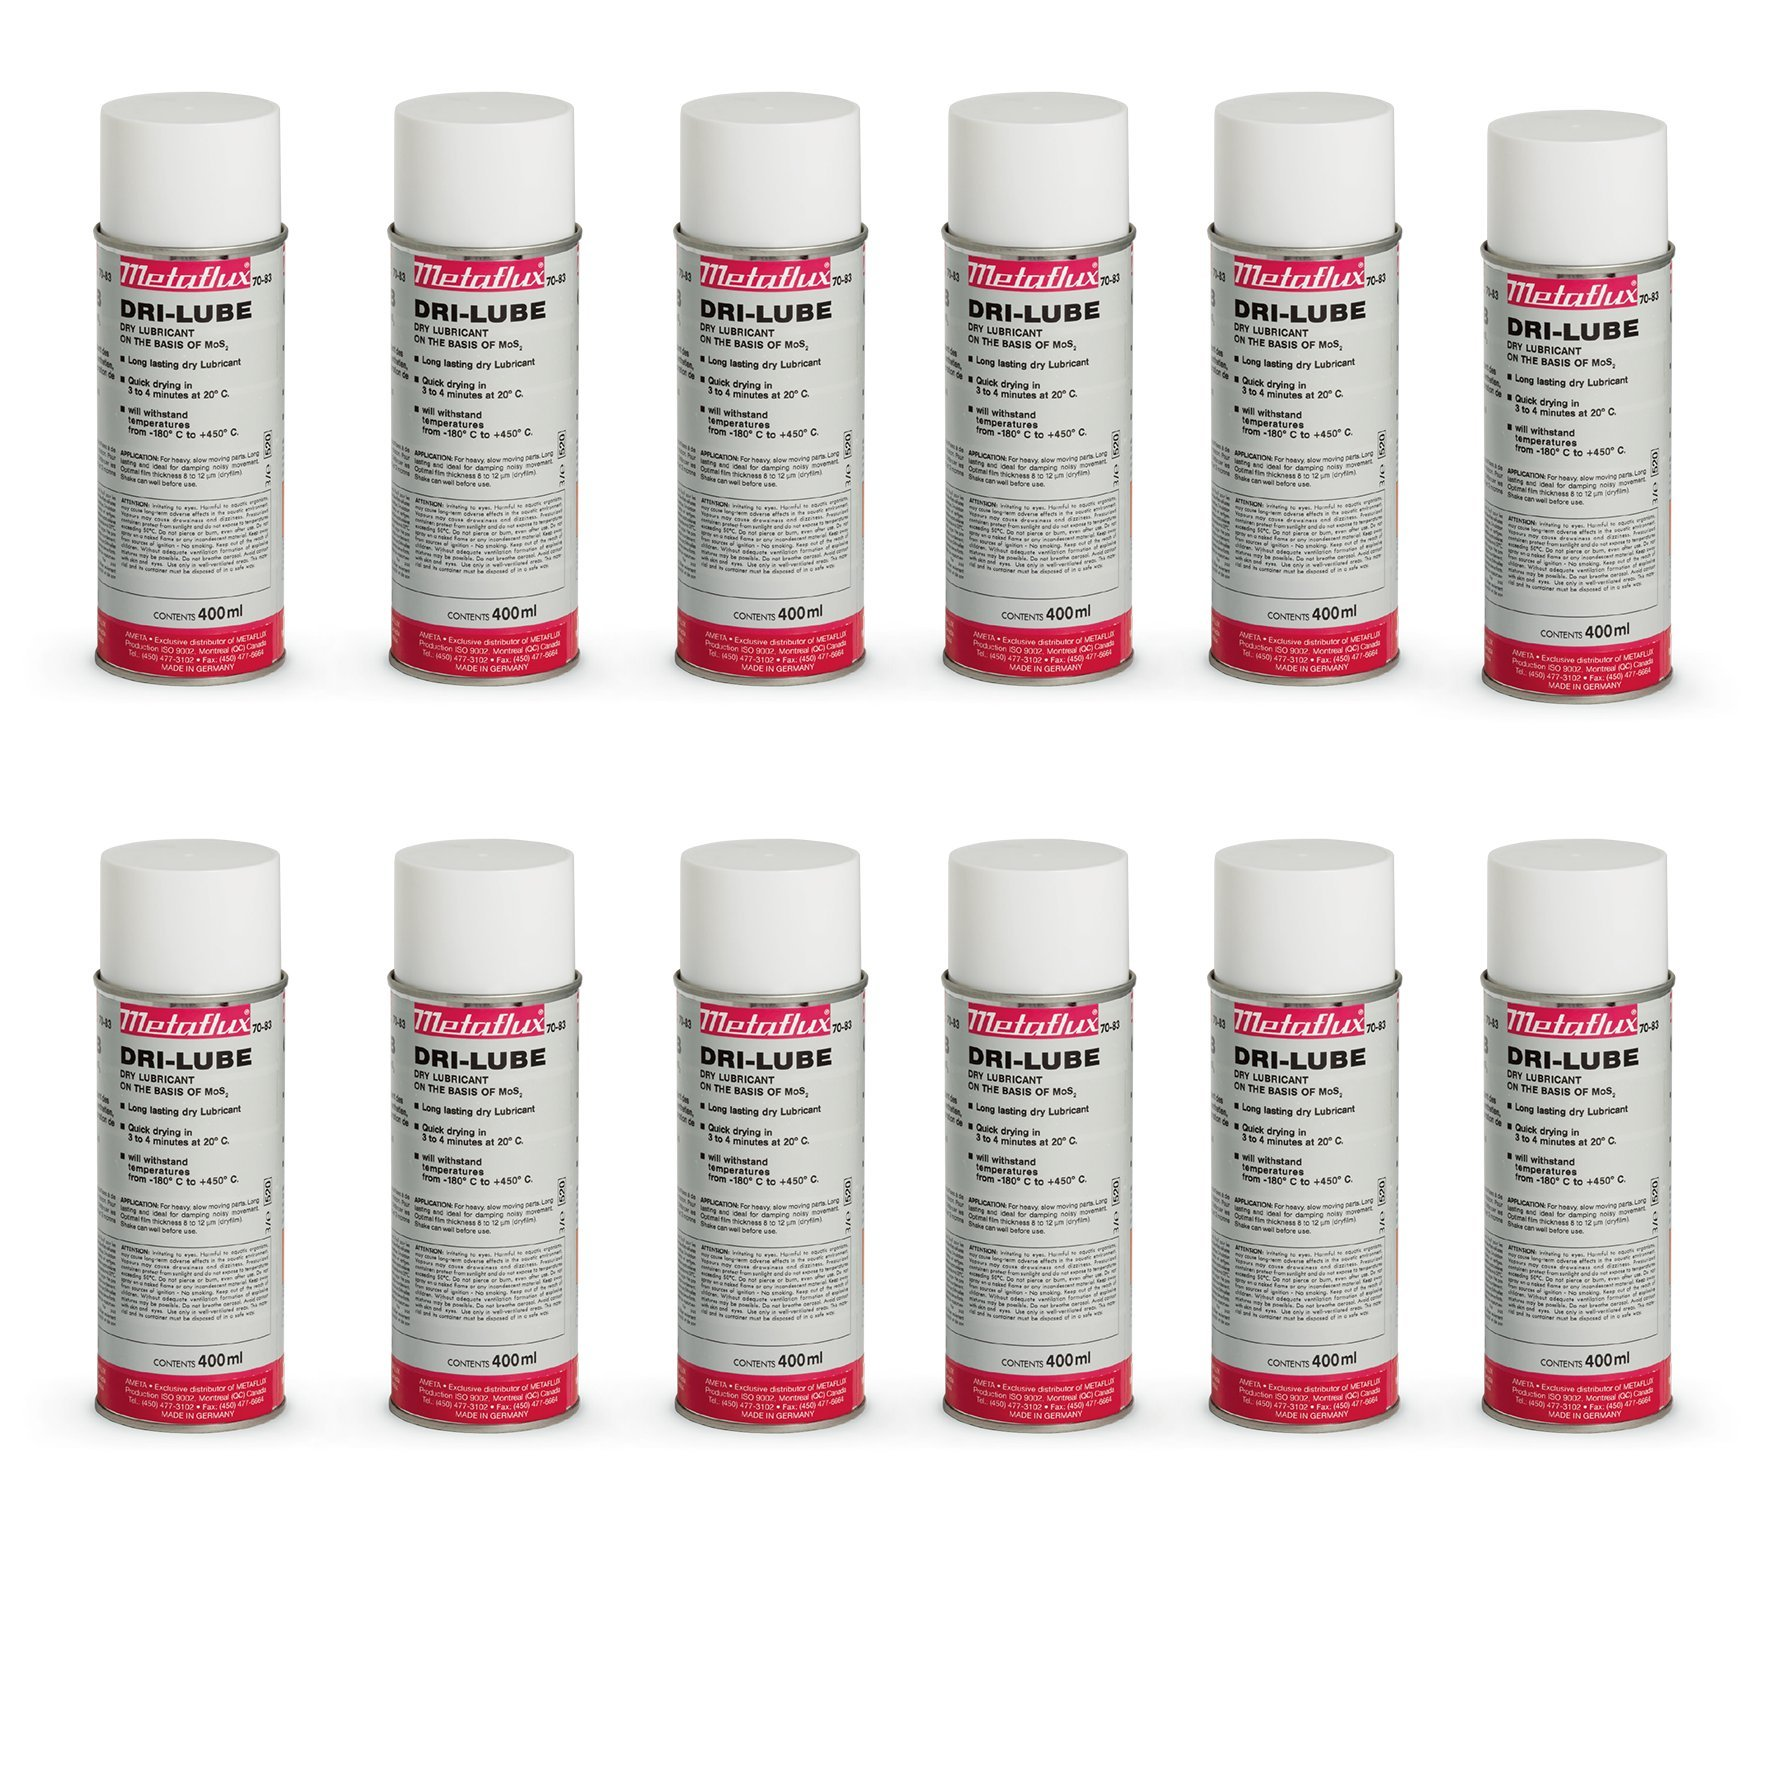 70-83 Dry-Lube Spray Metaflux Mos2 Based Lubricant Corrosion Protection Long-Lasting Constant Friction Coefficient (12)